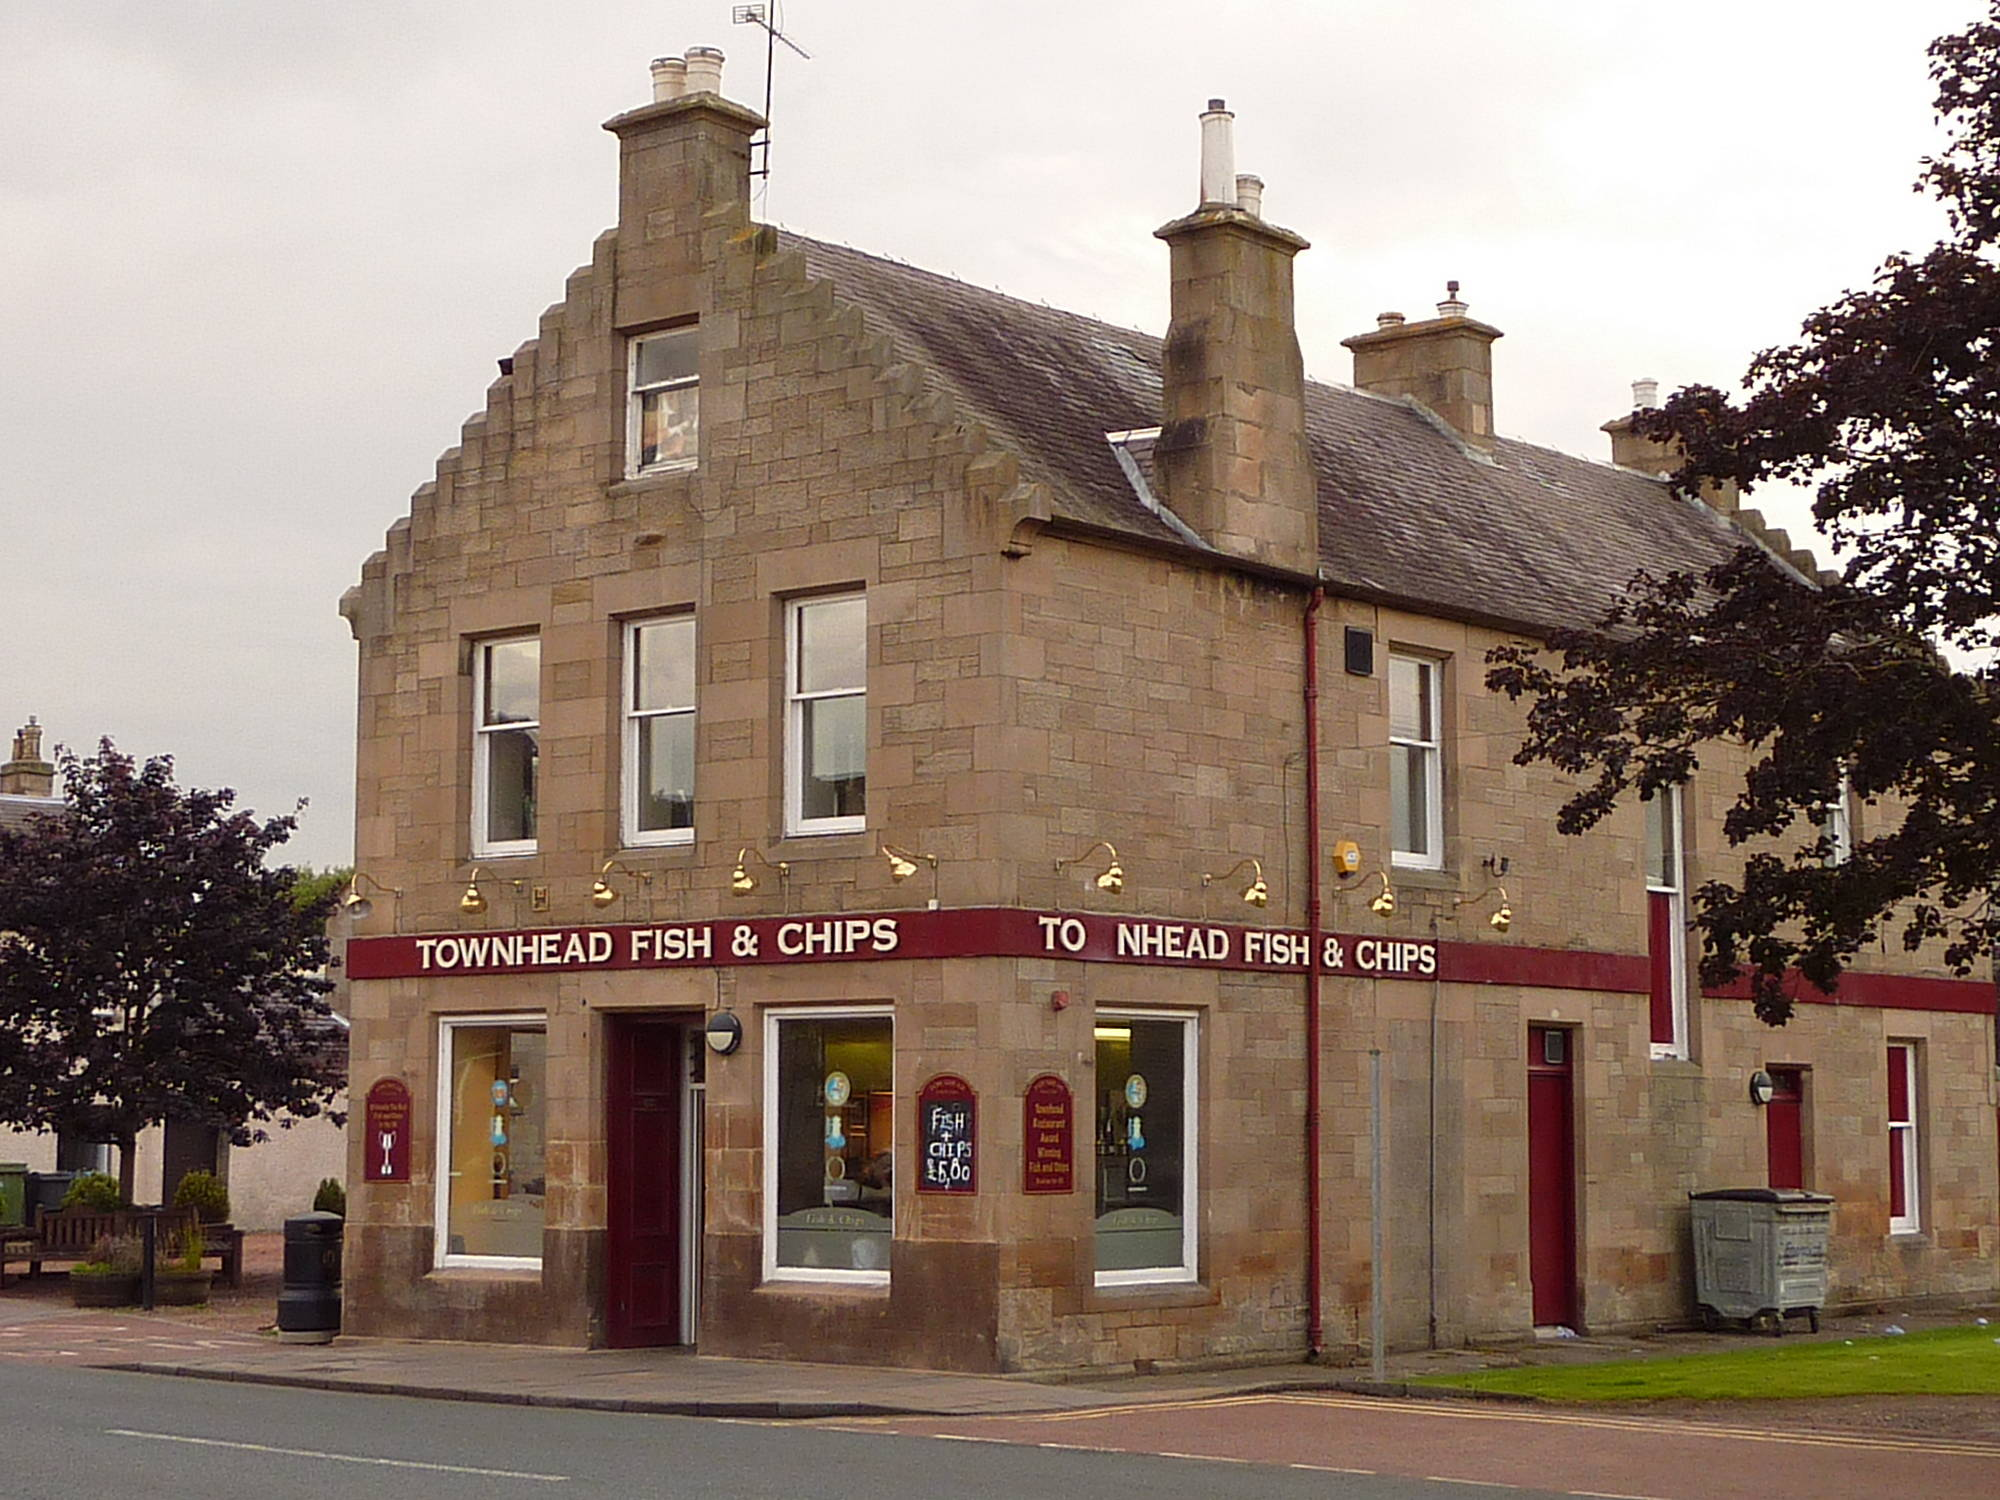 Townhead Fish and Chips